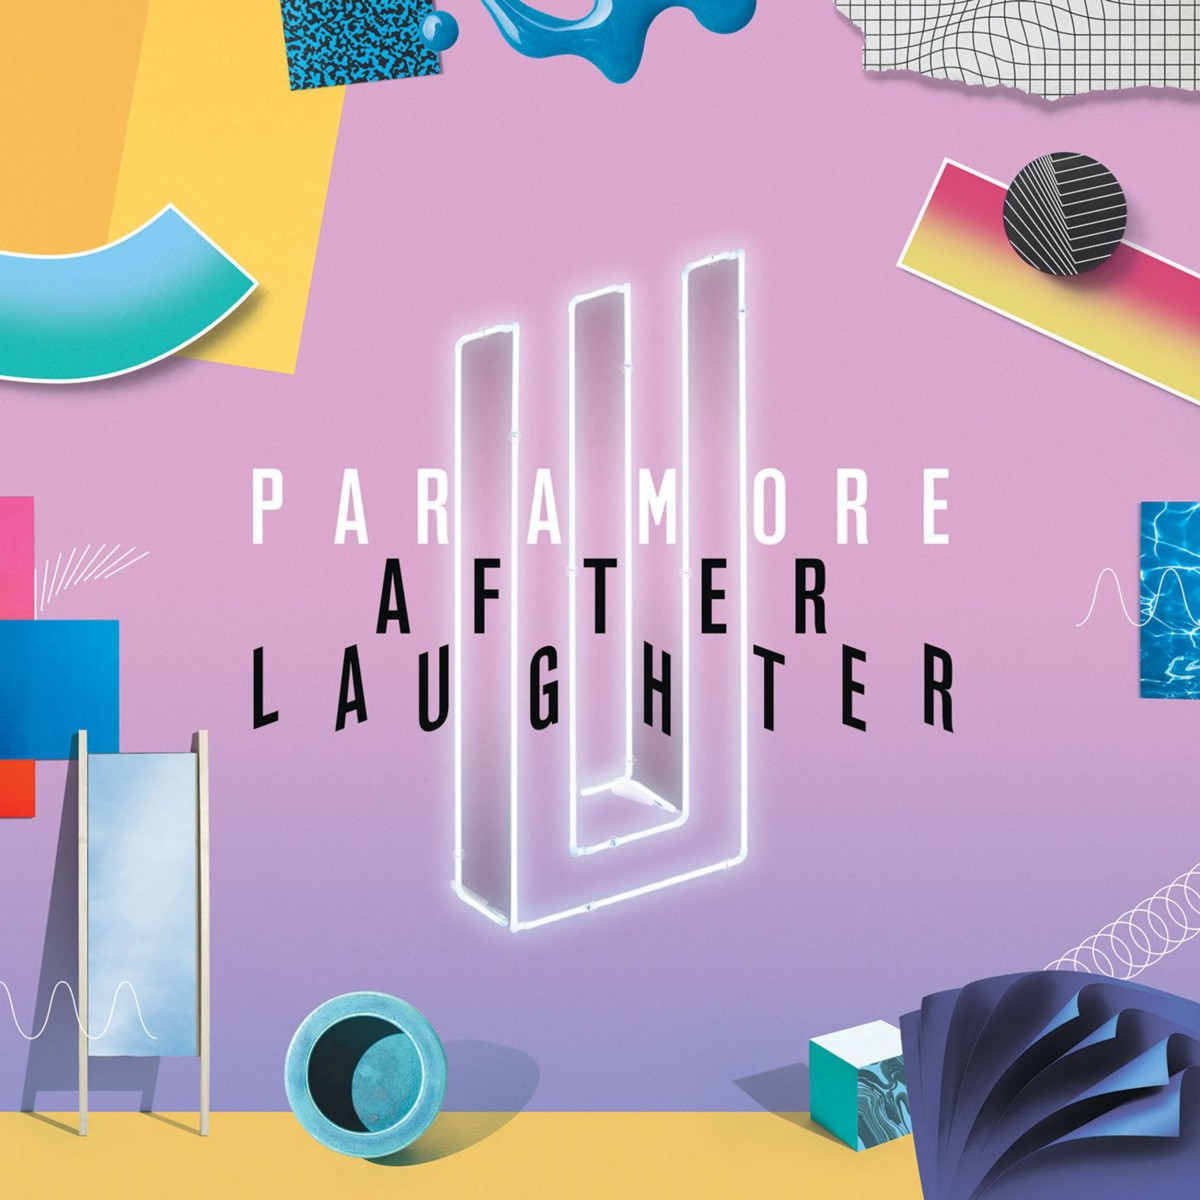 Paramore's After Laughter: a Perfect Album for When You Want